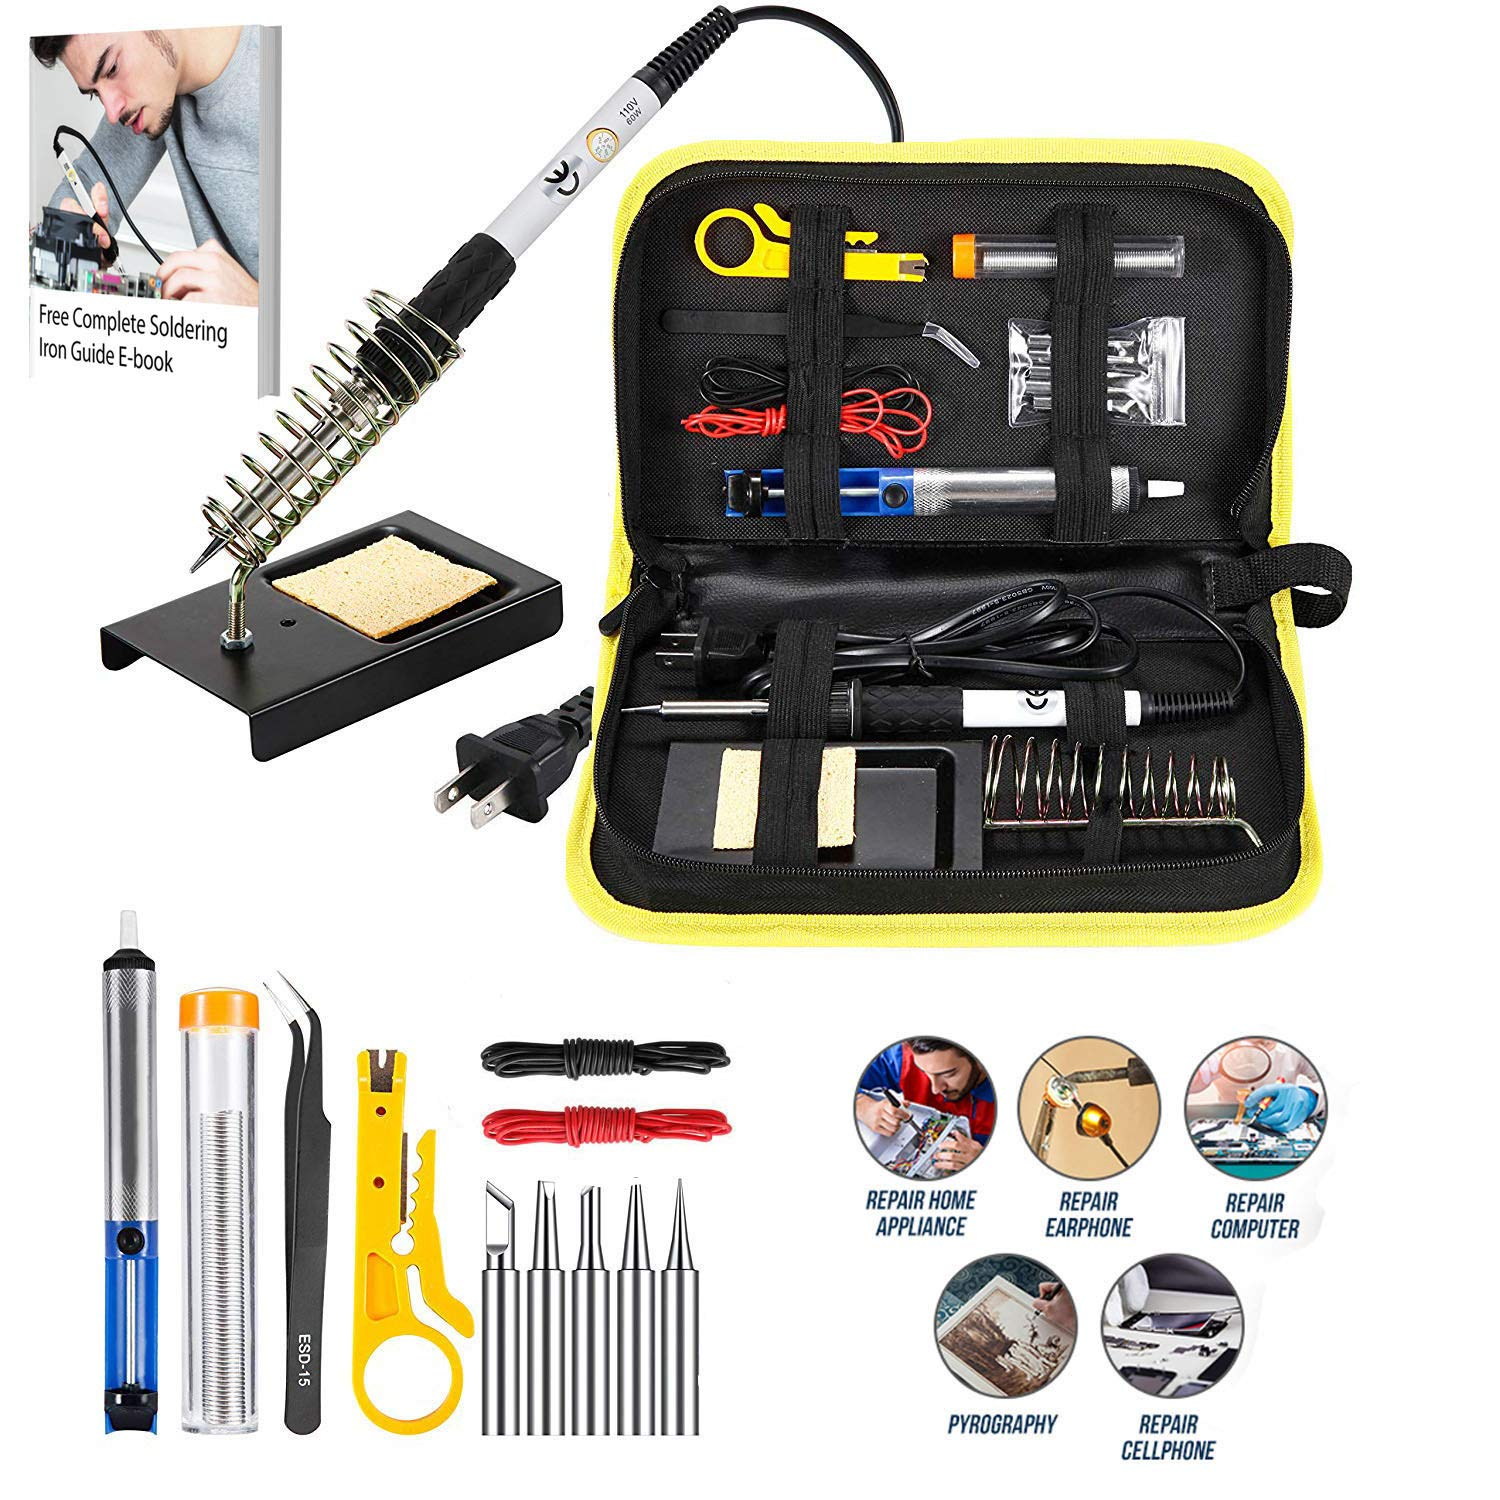 Magentos Superb 14 Pieces Set Adjustable Temperature Soldering Iron Gun Kit 60w - 110v - Best